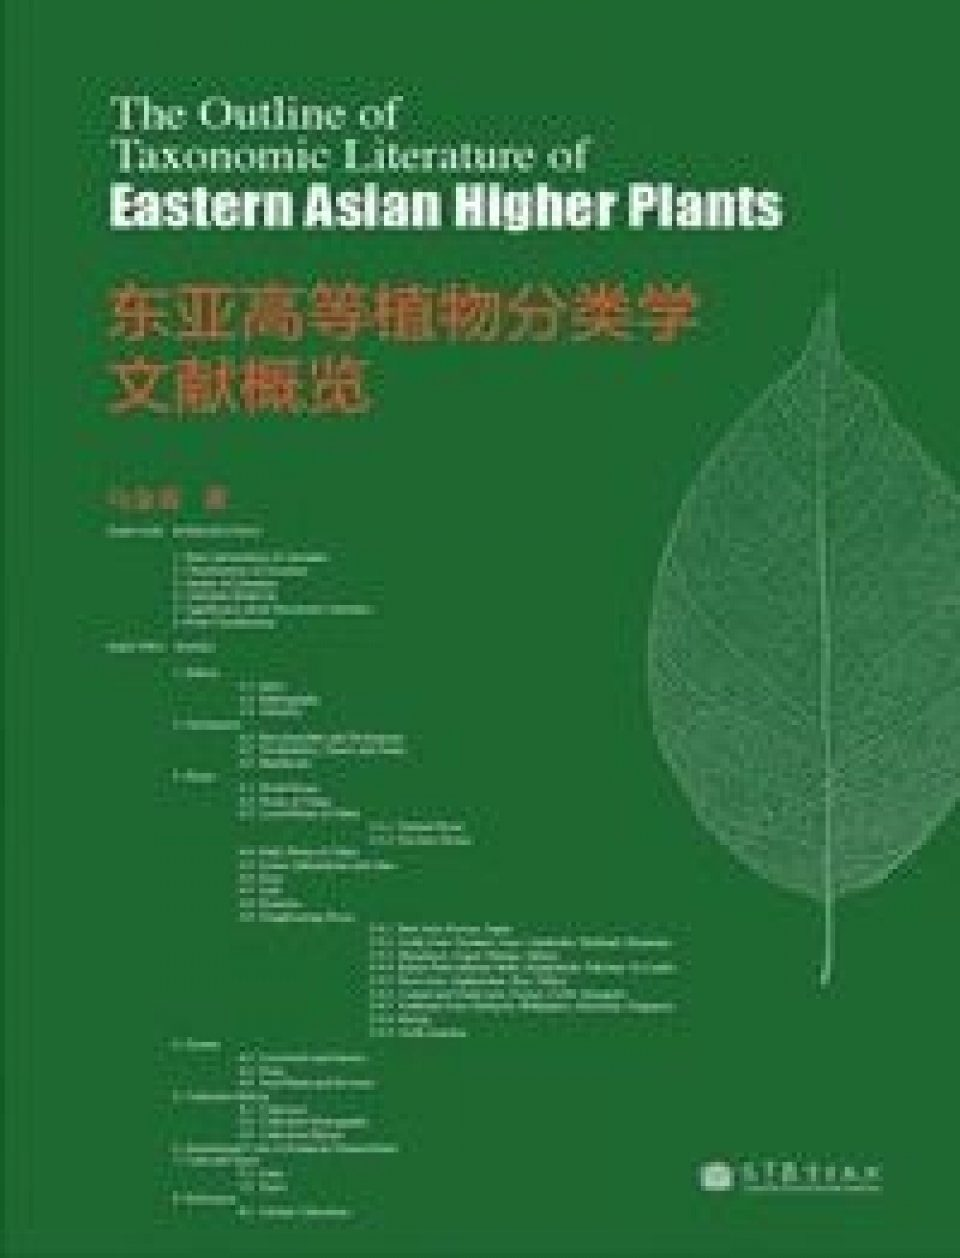 The Outline of Taxonomic Literature of Eastern Asian Higher Plants [Chinese]